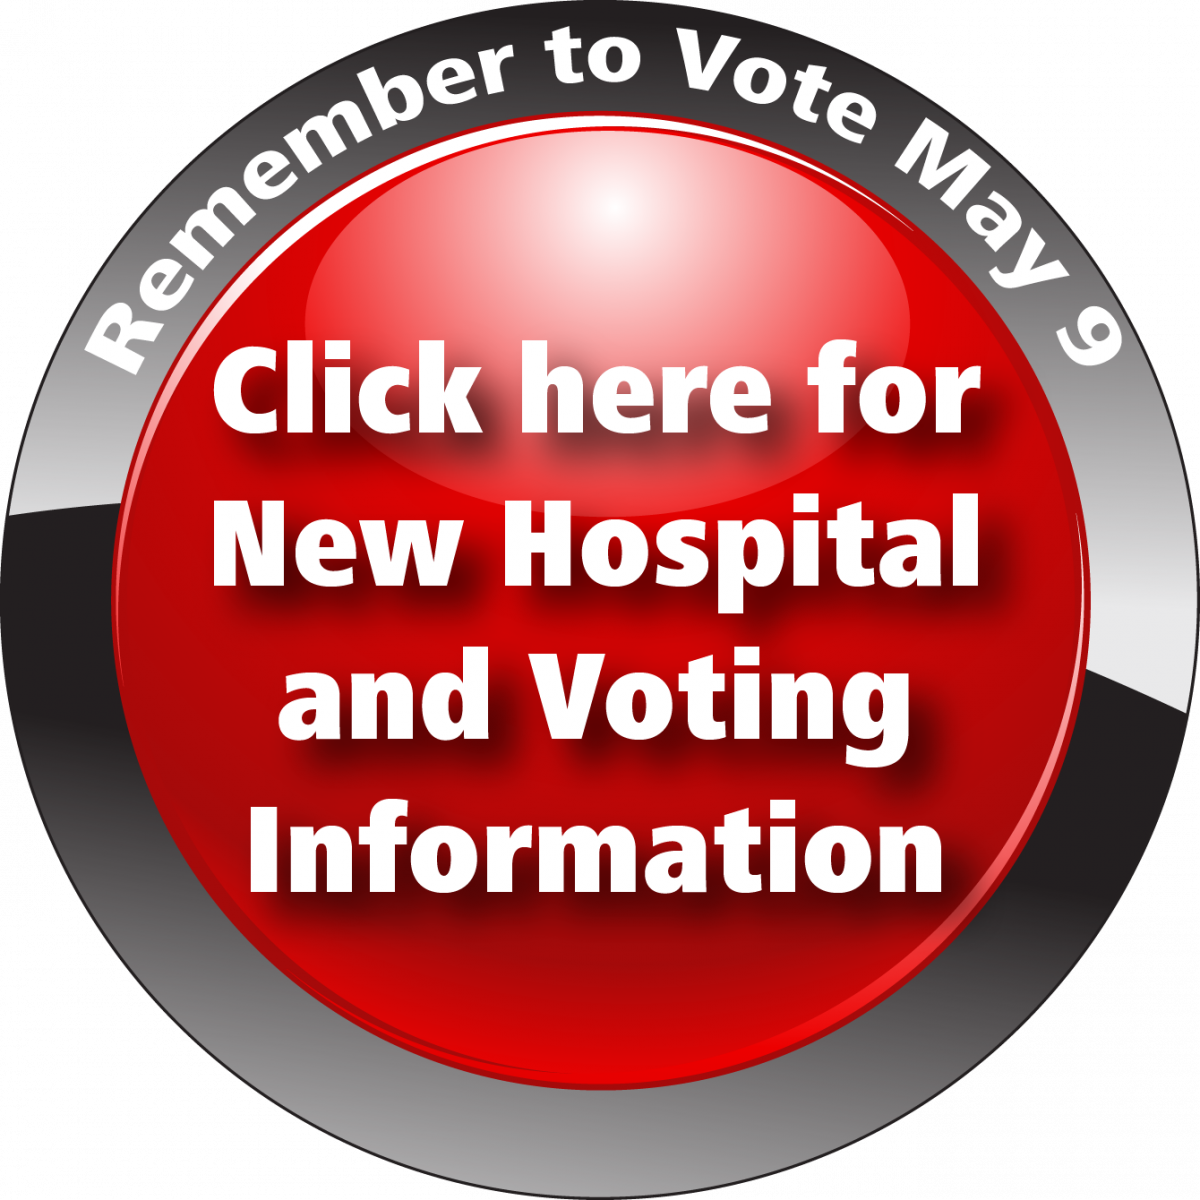 Click here for new hospital and voting information